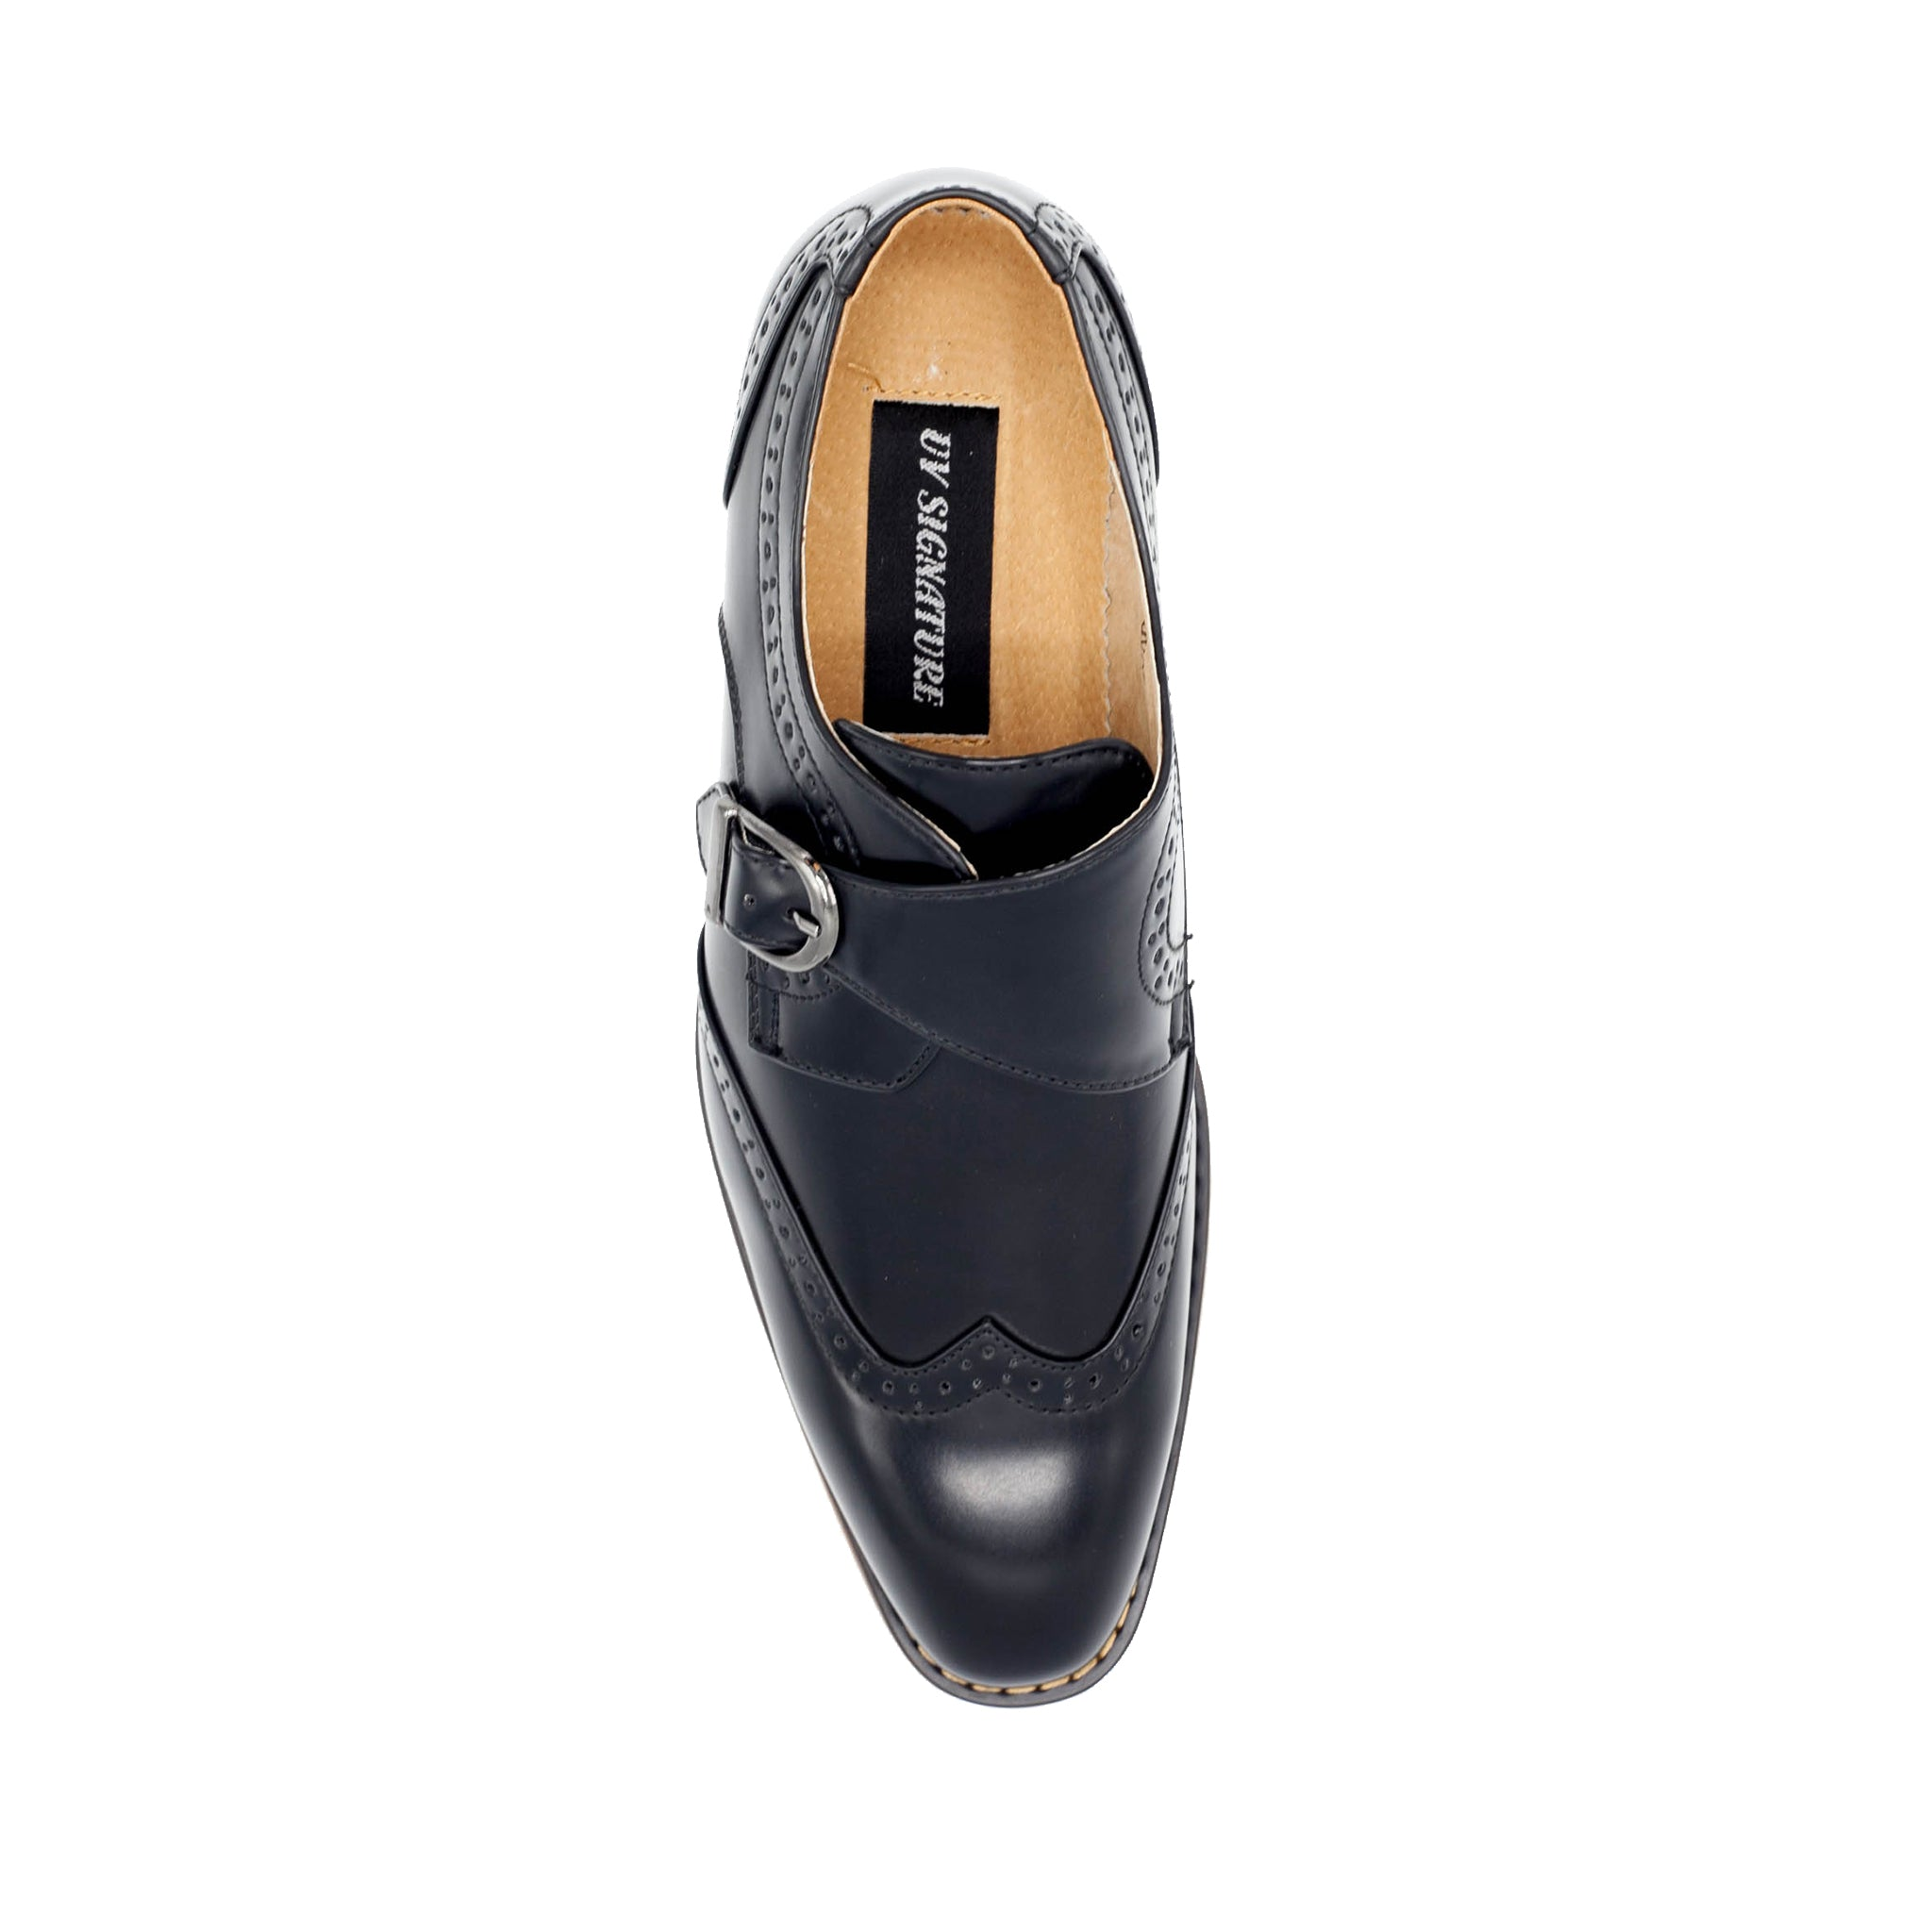 UV SIGNATURE BLACK MONK STRAP